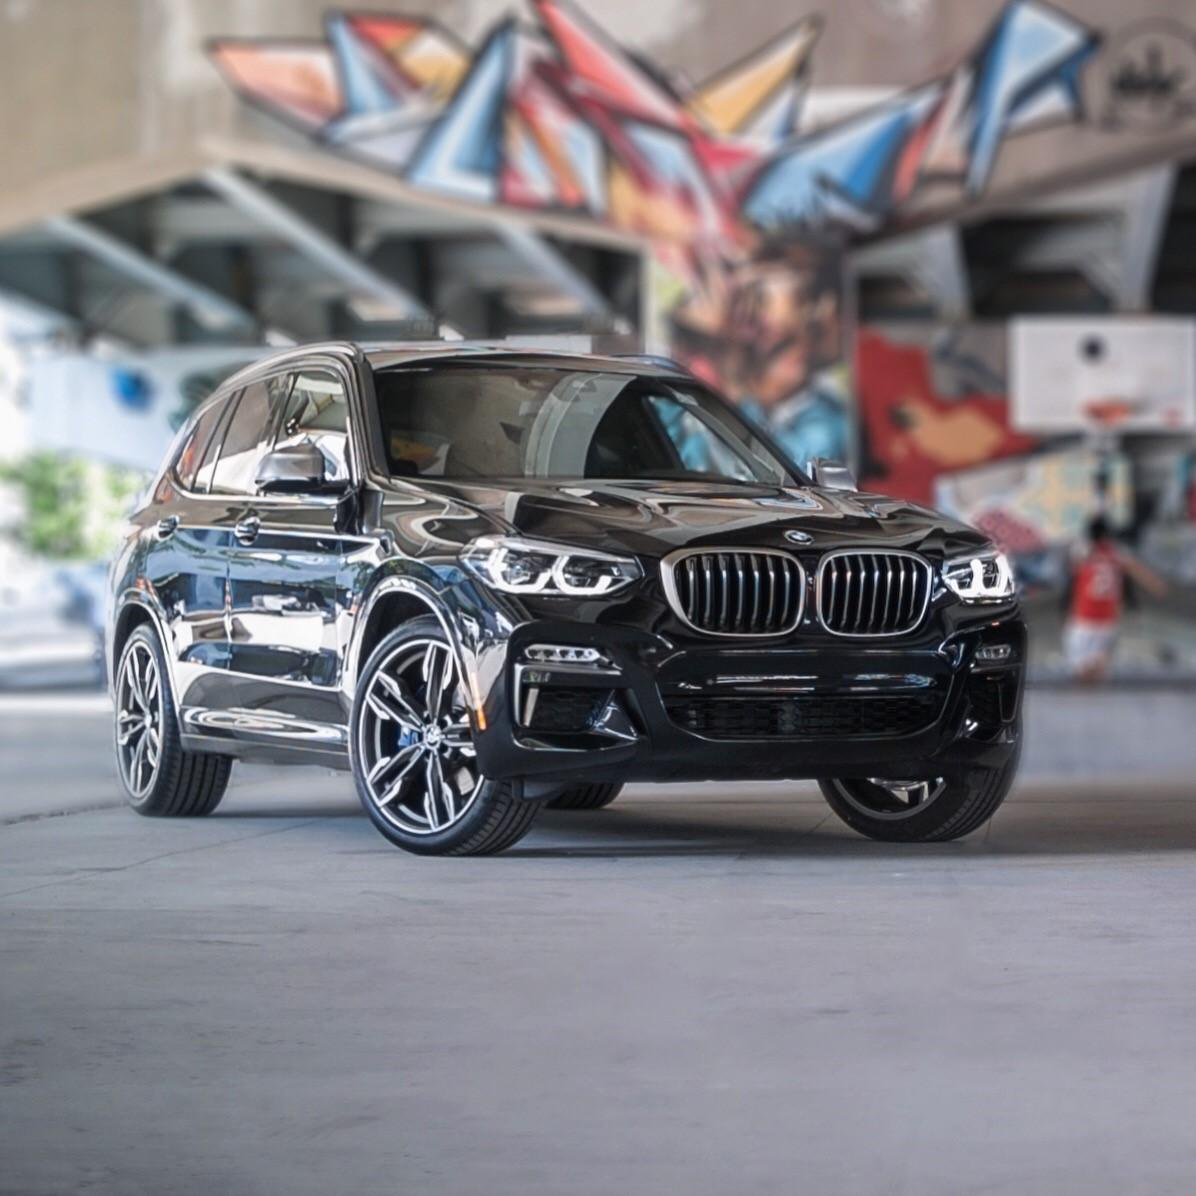 For All Summer Adventures. The BMW X3.